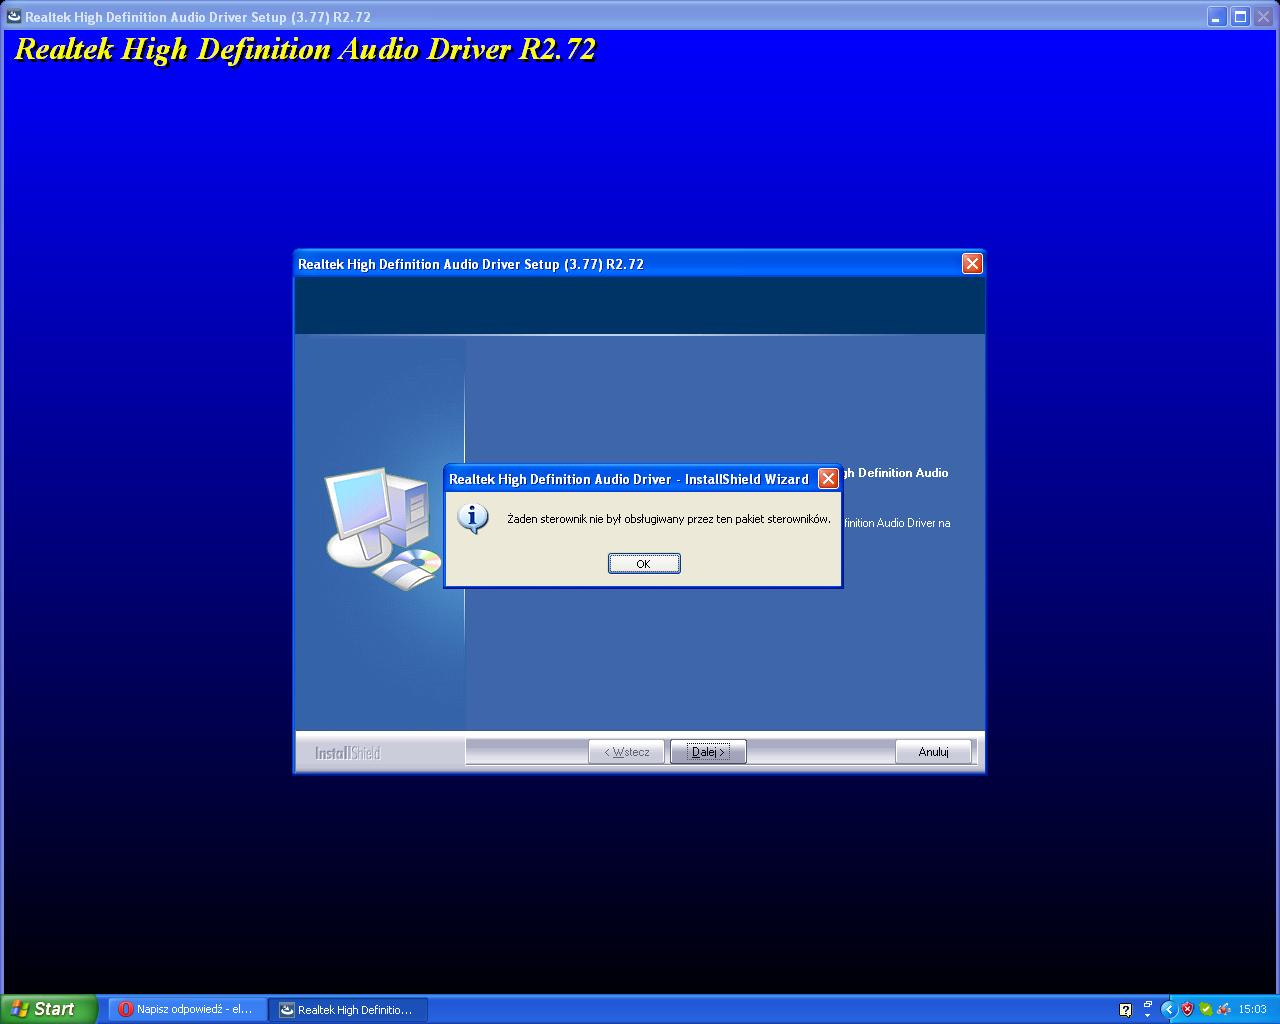 Features of Realtek High Definition Audio Driver